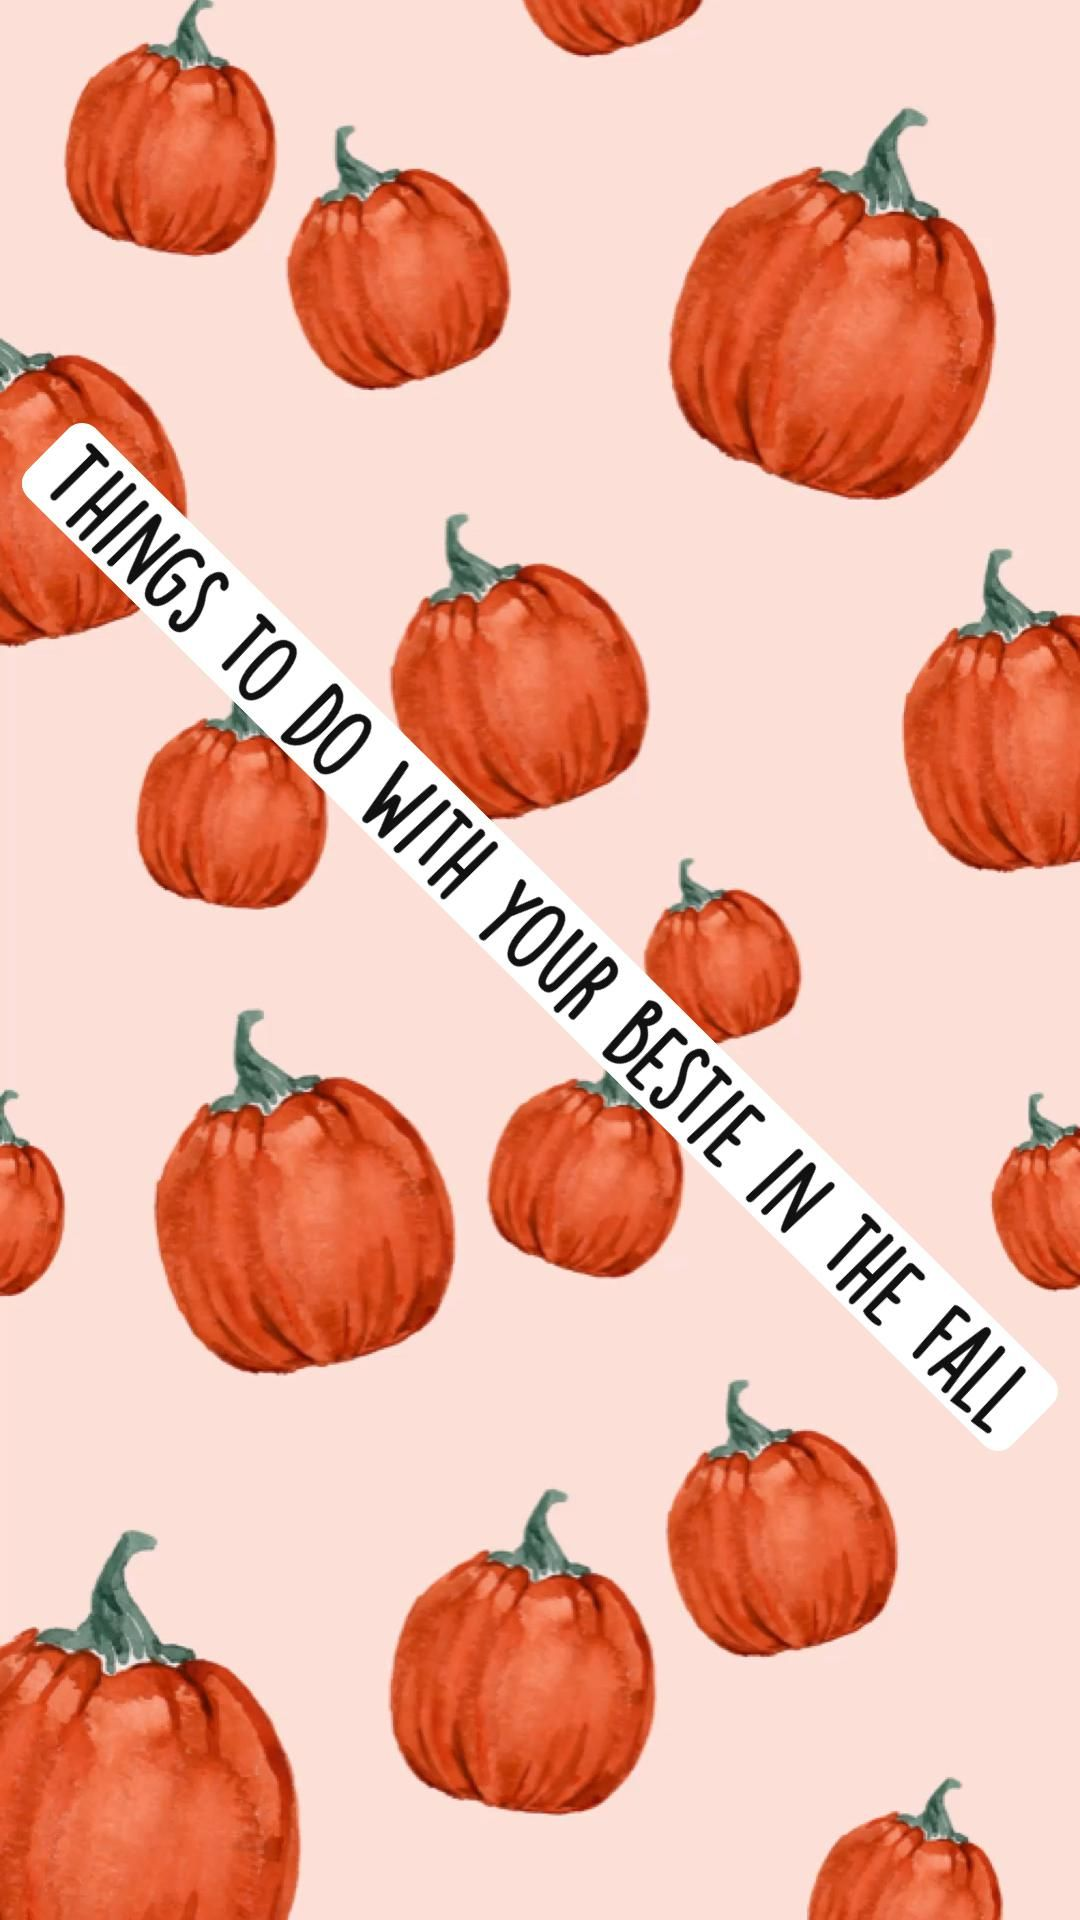 Things to do with your bestie in the fall